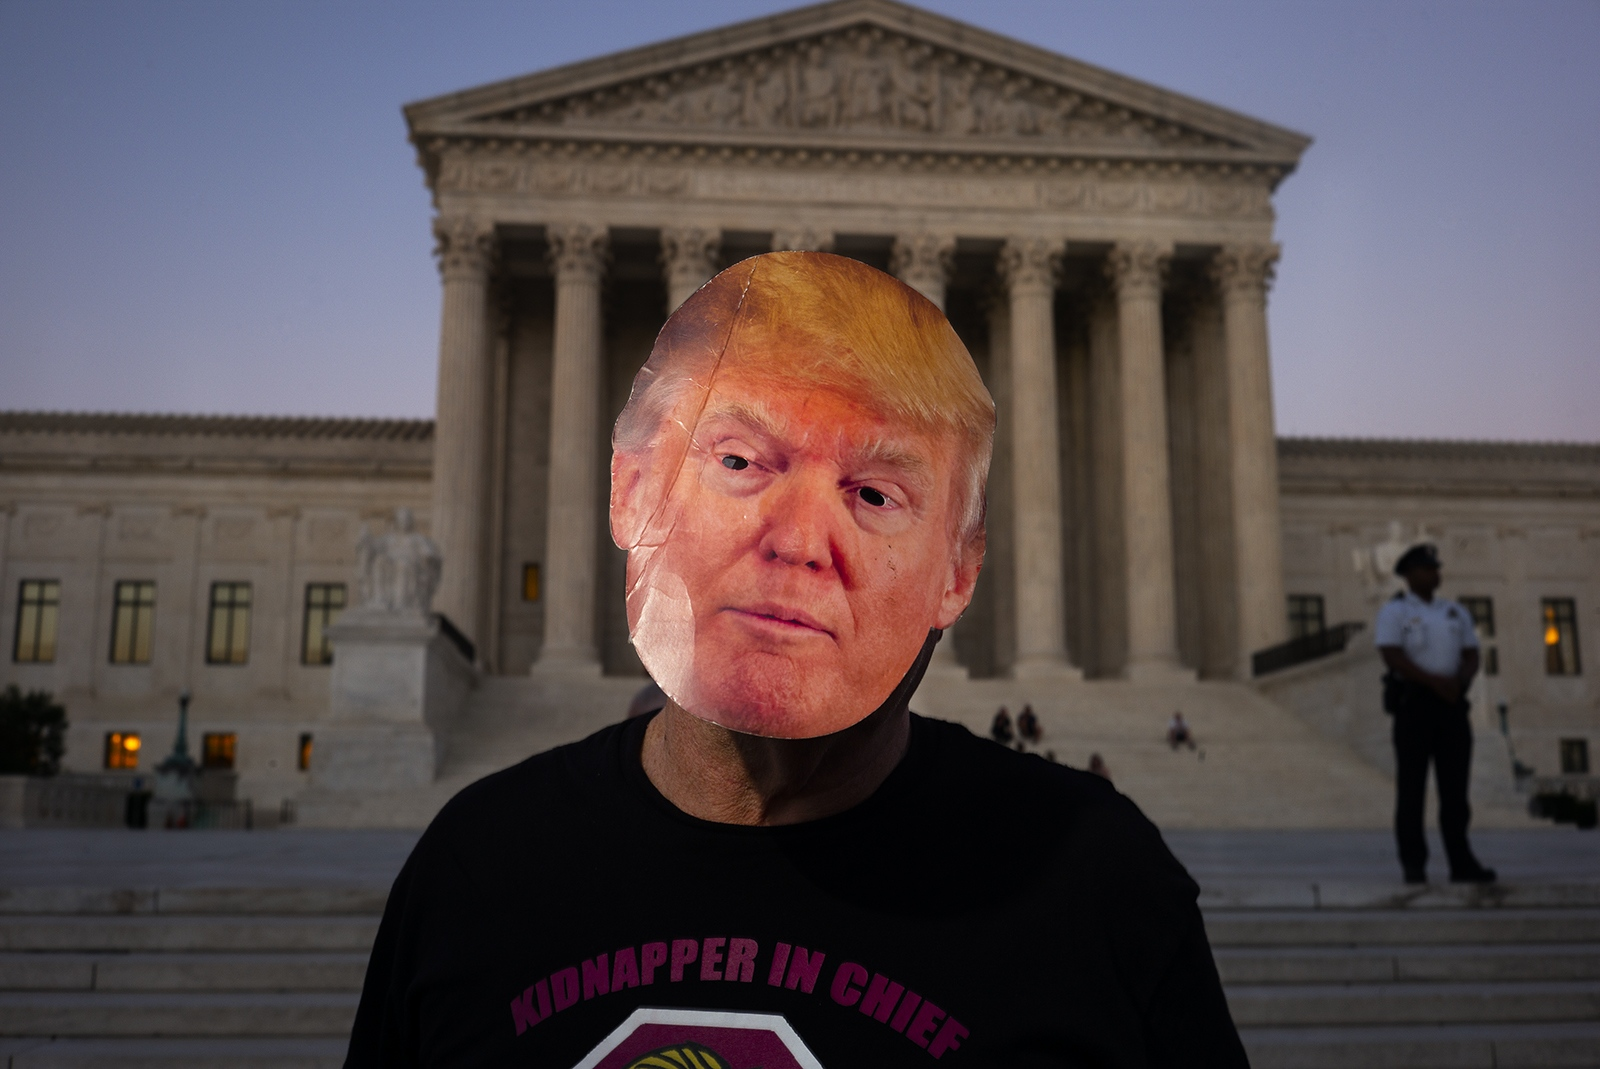 A protester in a Trump mask attends a rally in front of the U.S. Supreme Court building before Brett Kavanaugh was nominated to the court.